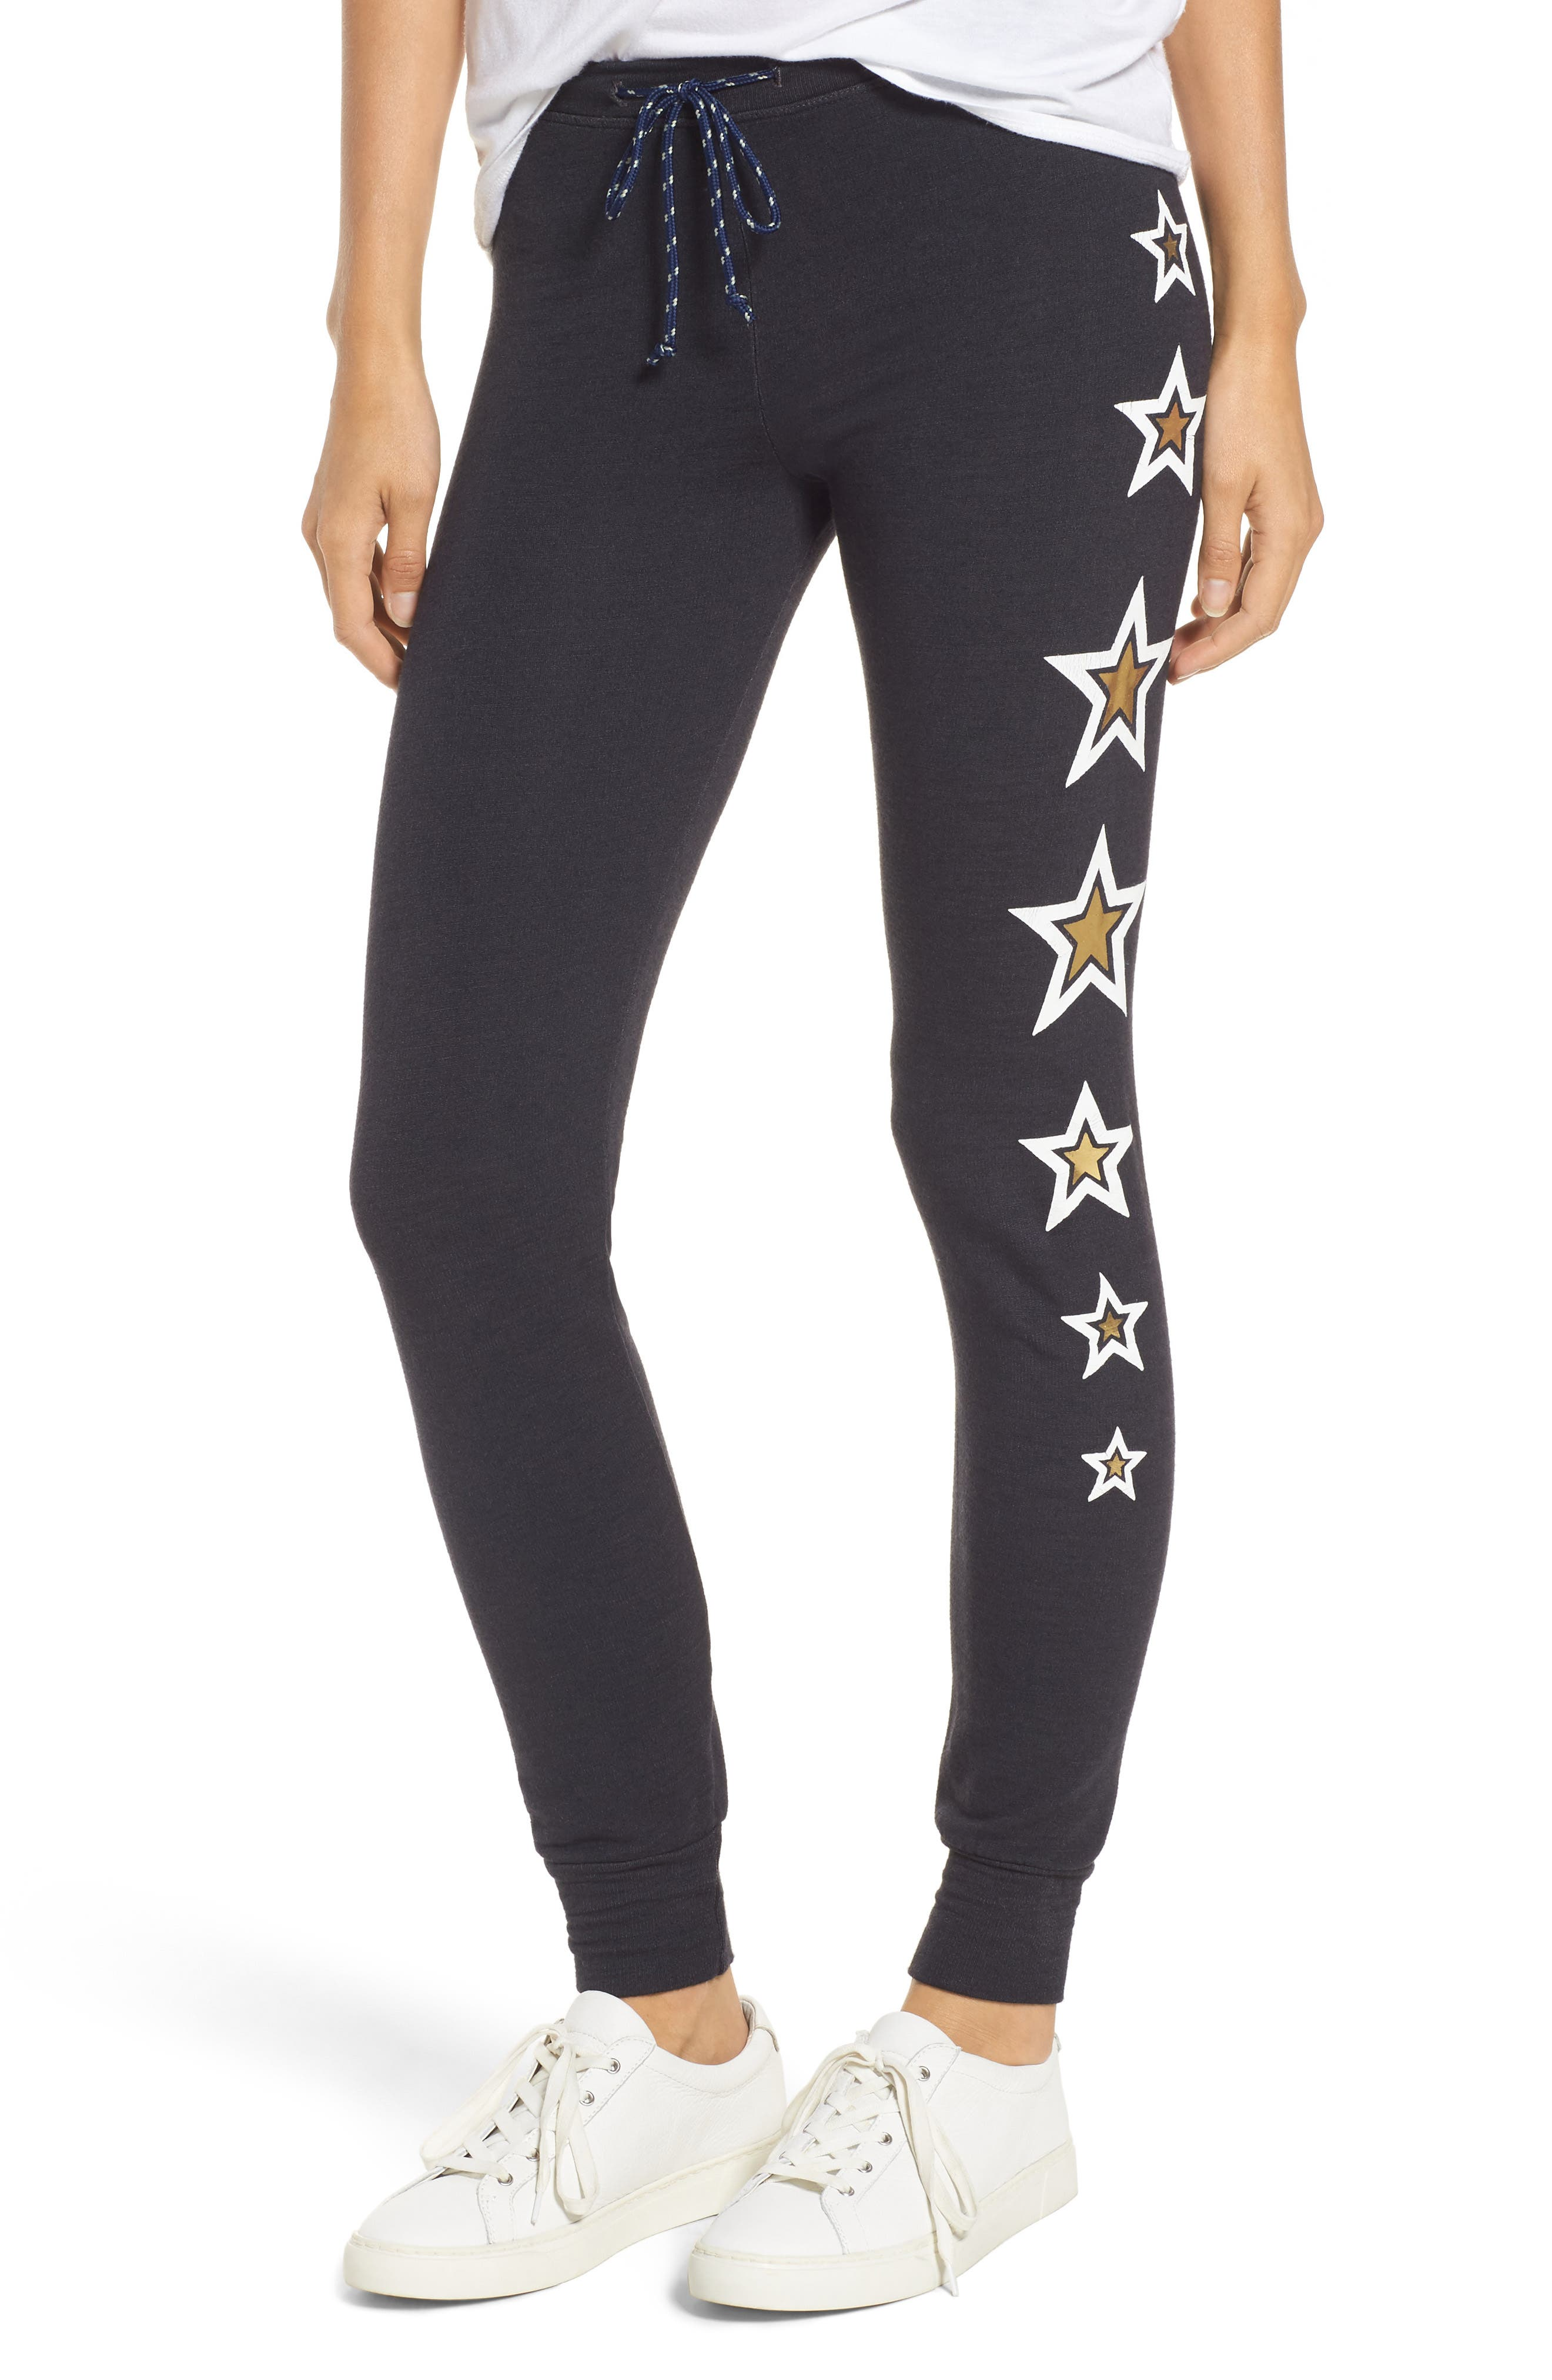 Alternate Image 1 Selected - Sundry Star Print Skinny Pants